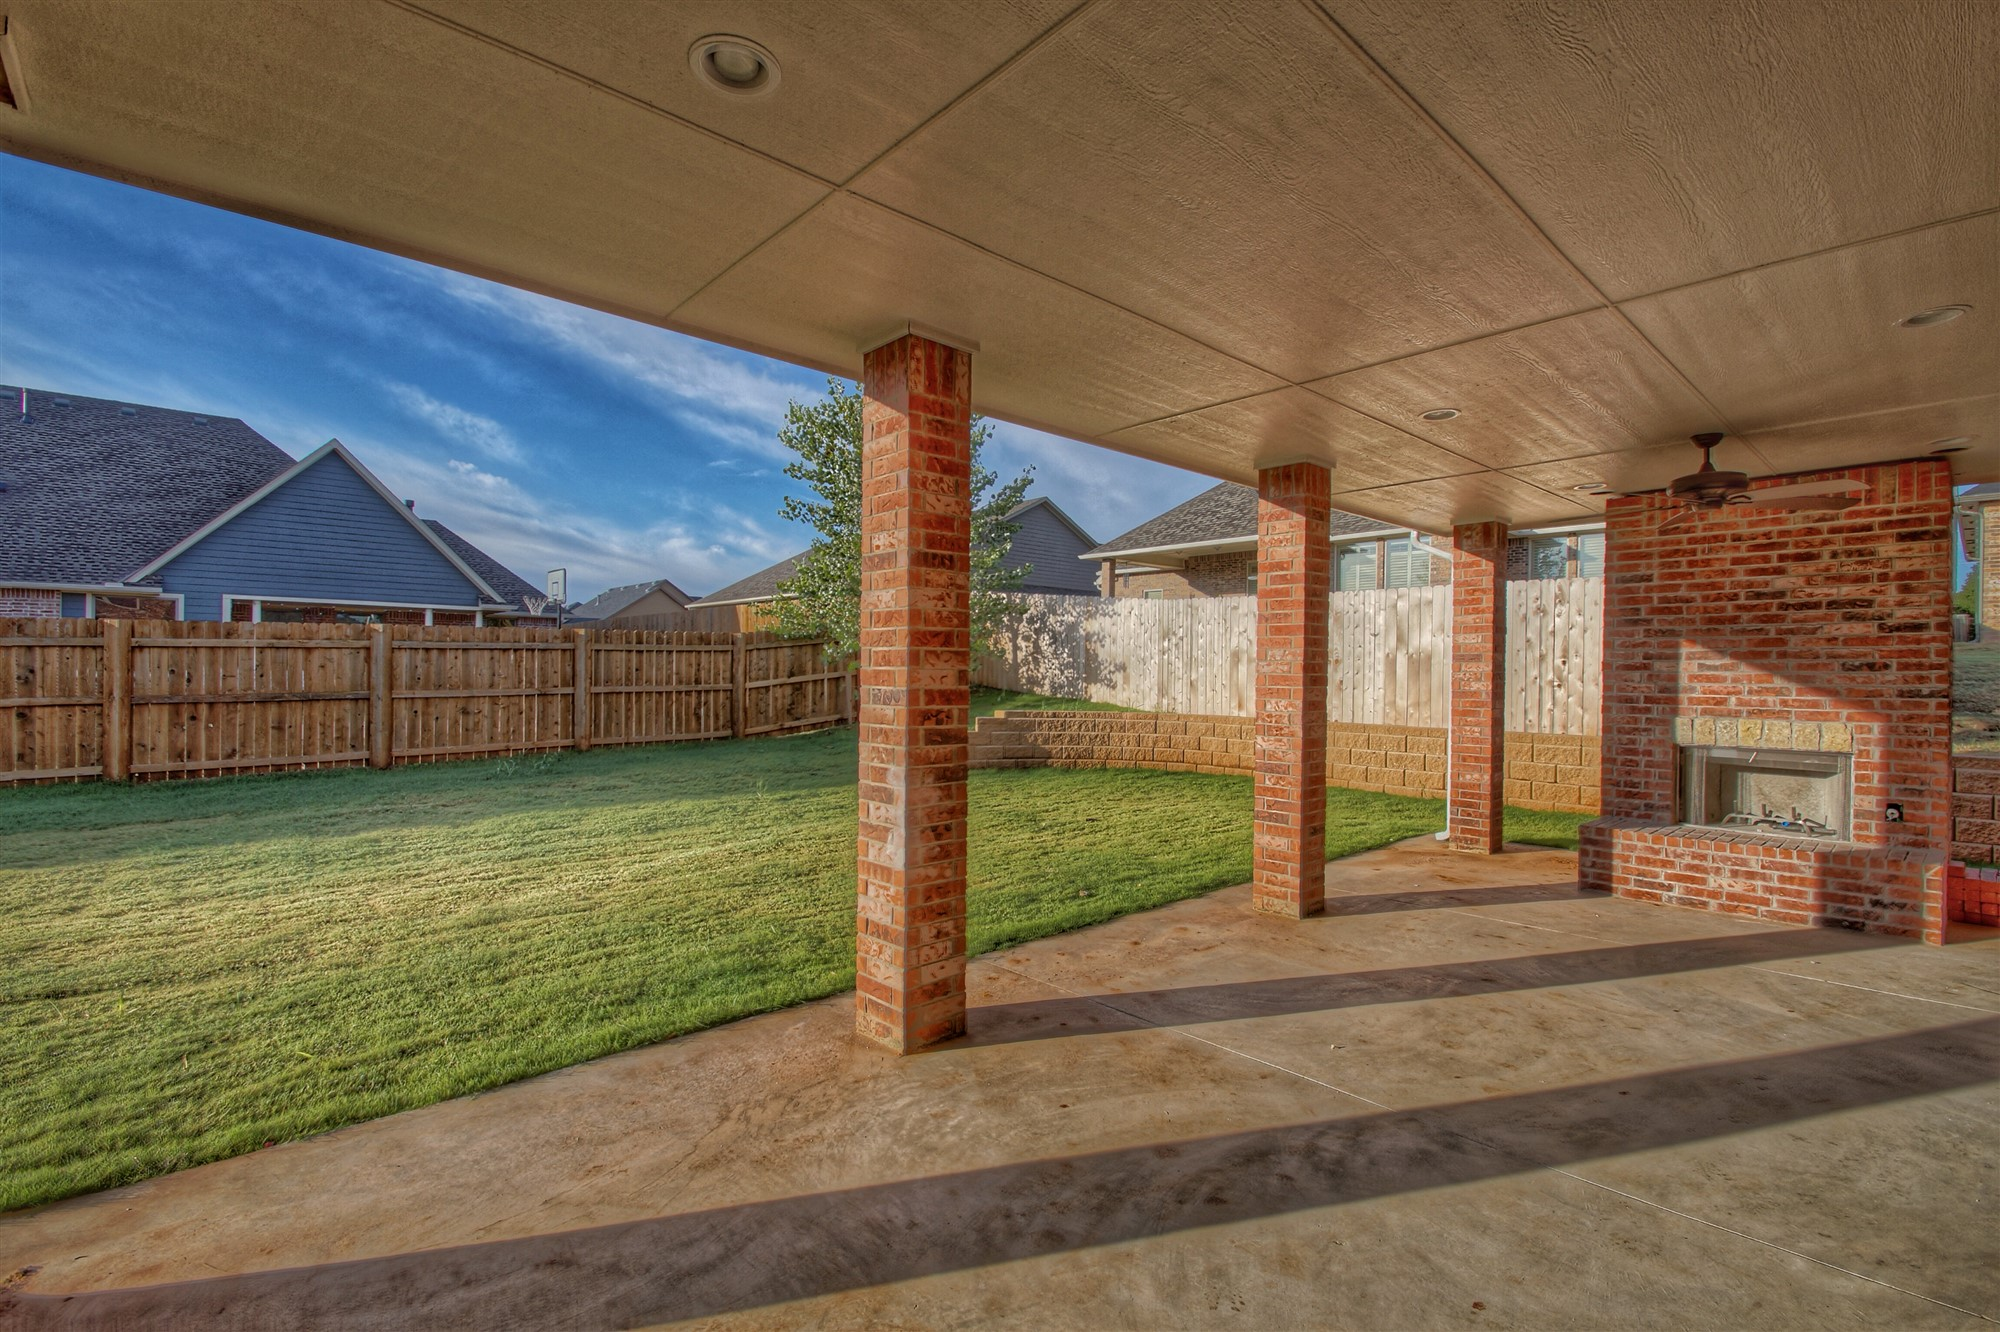 24 - Covered Patio.jpg